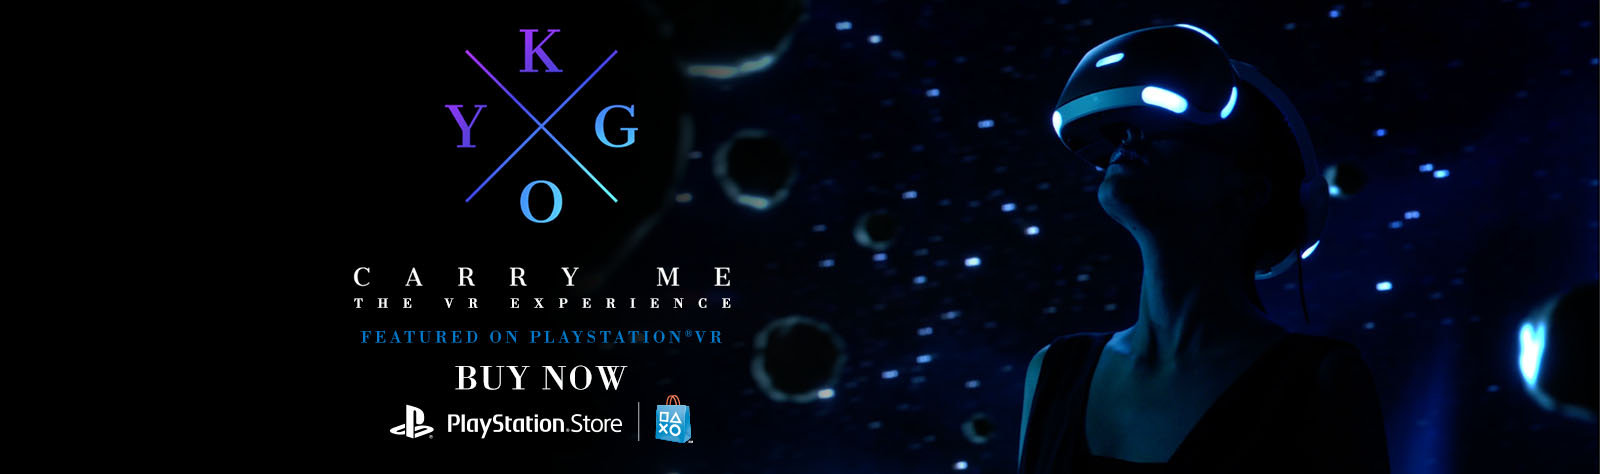 playstation-music-kygo-vr-banner-01-us-05jan17